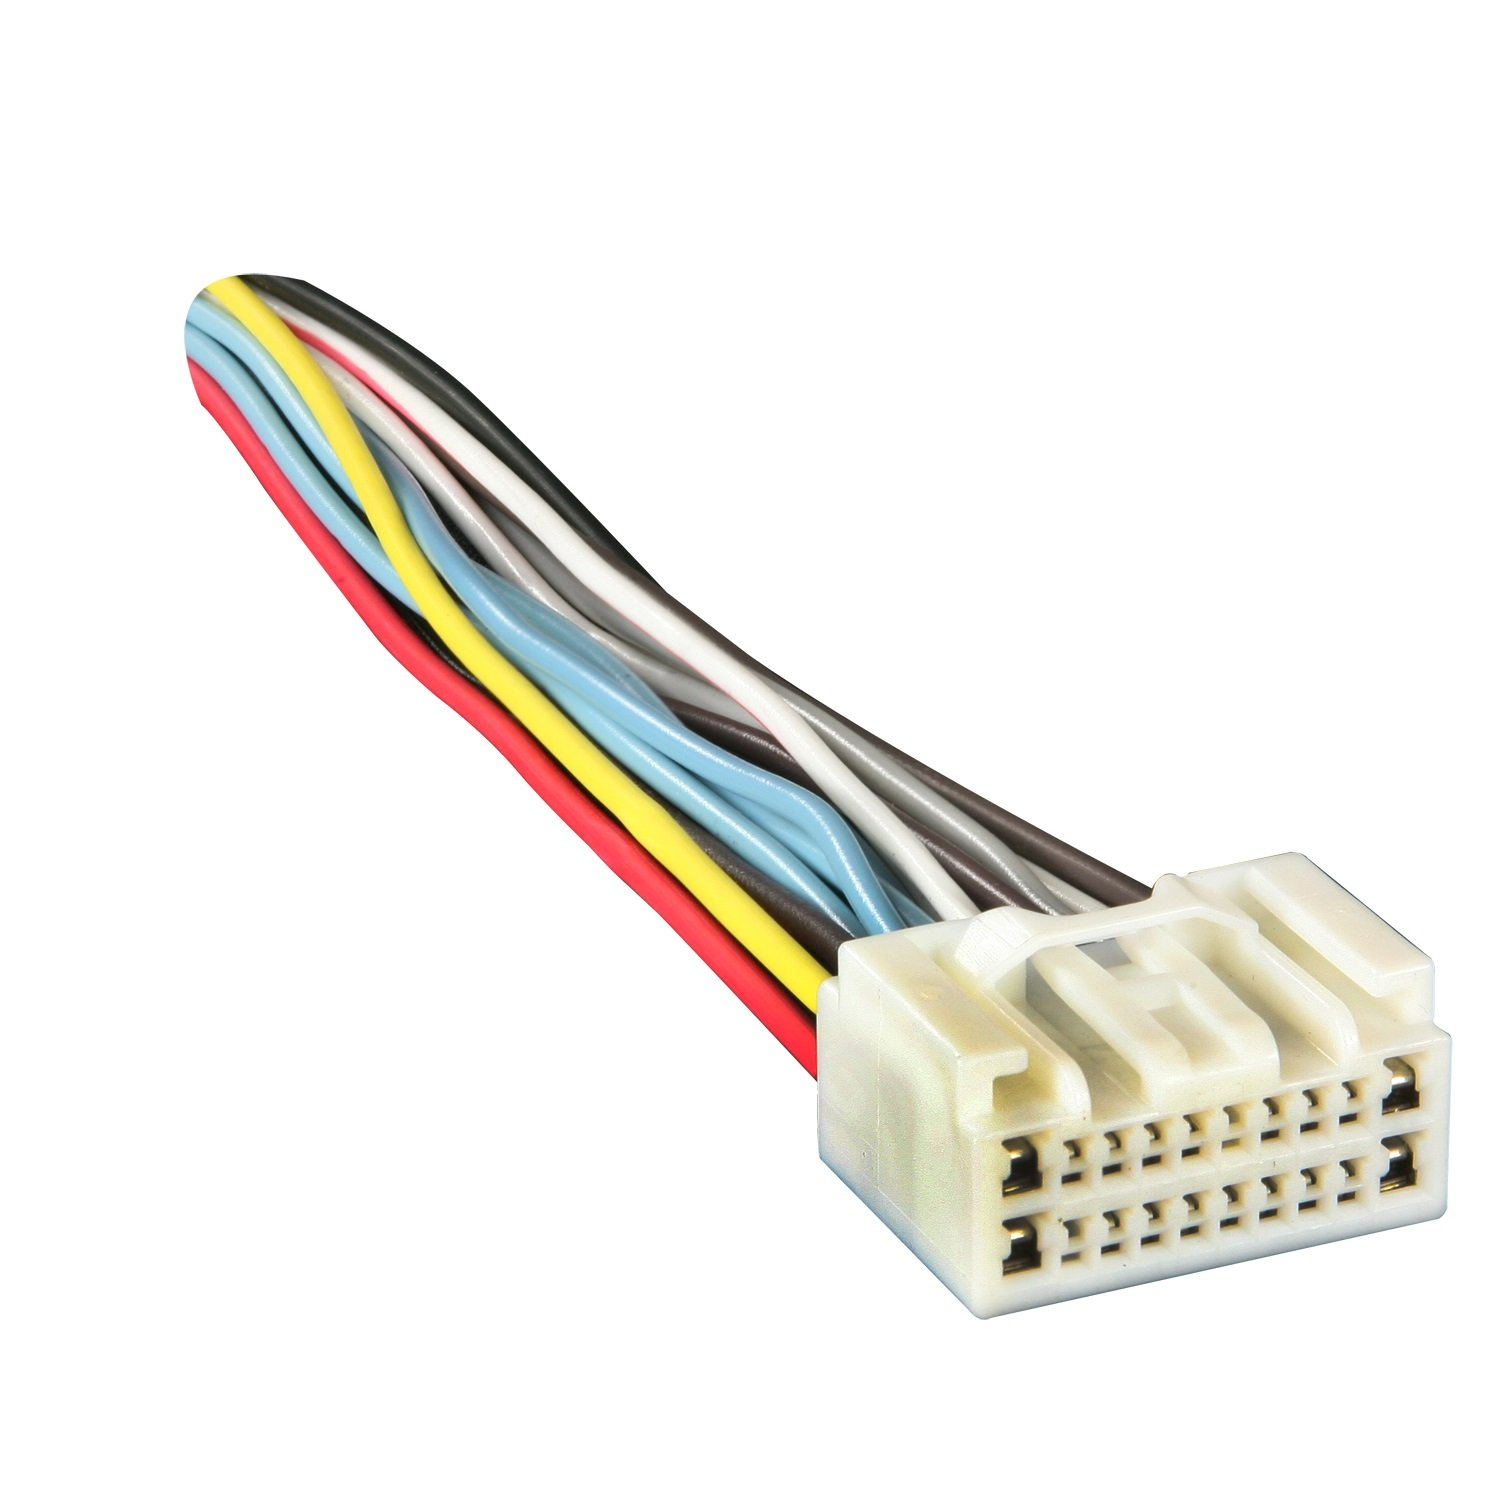 61k6eVpKLJL._SL1500_ amazon com metra 71 8113 reverse wiring harness for select 2000 wiring harness connectors at couponss.co